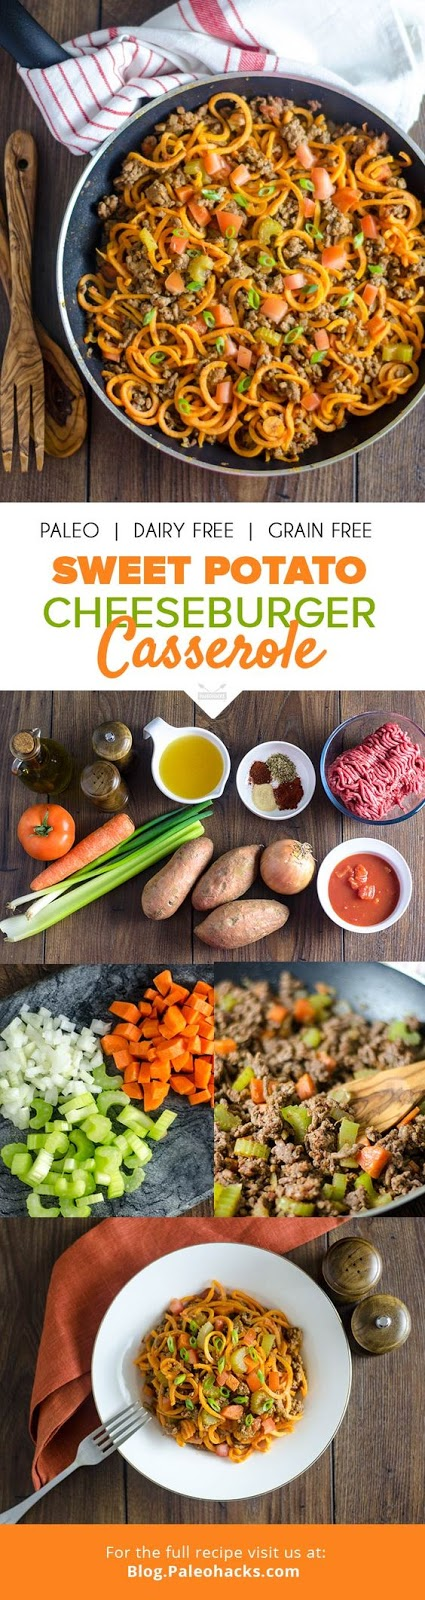 ★★★★☆ 7561 ratings | Sweet Potato Cheeseburger Casserole #HEALTHYFOOD #EASYRECIPES #DINNER #LAUCH #DELICIOUS #EASY #HOLIDAYS #RECIPE #Sweet #Potato #Cheeseburger #Casserole